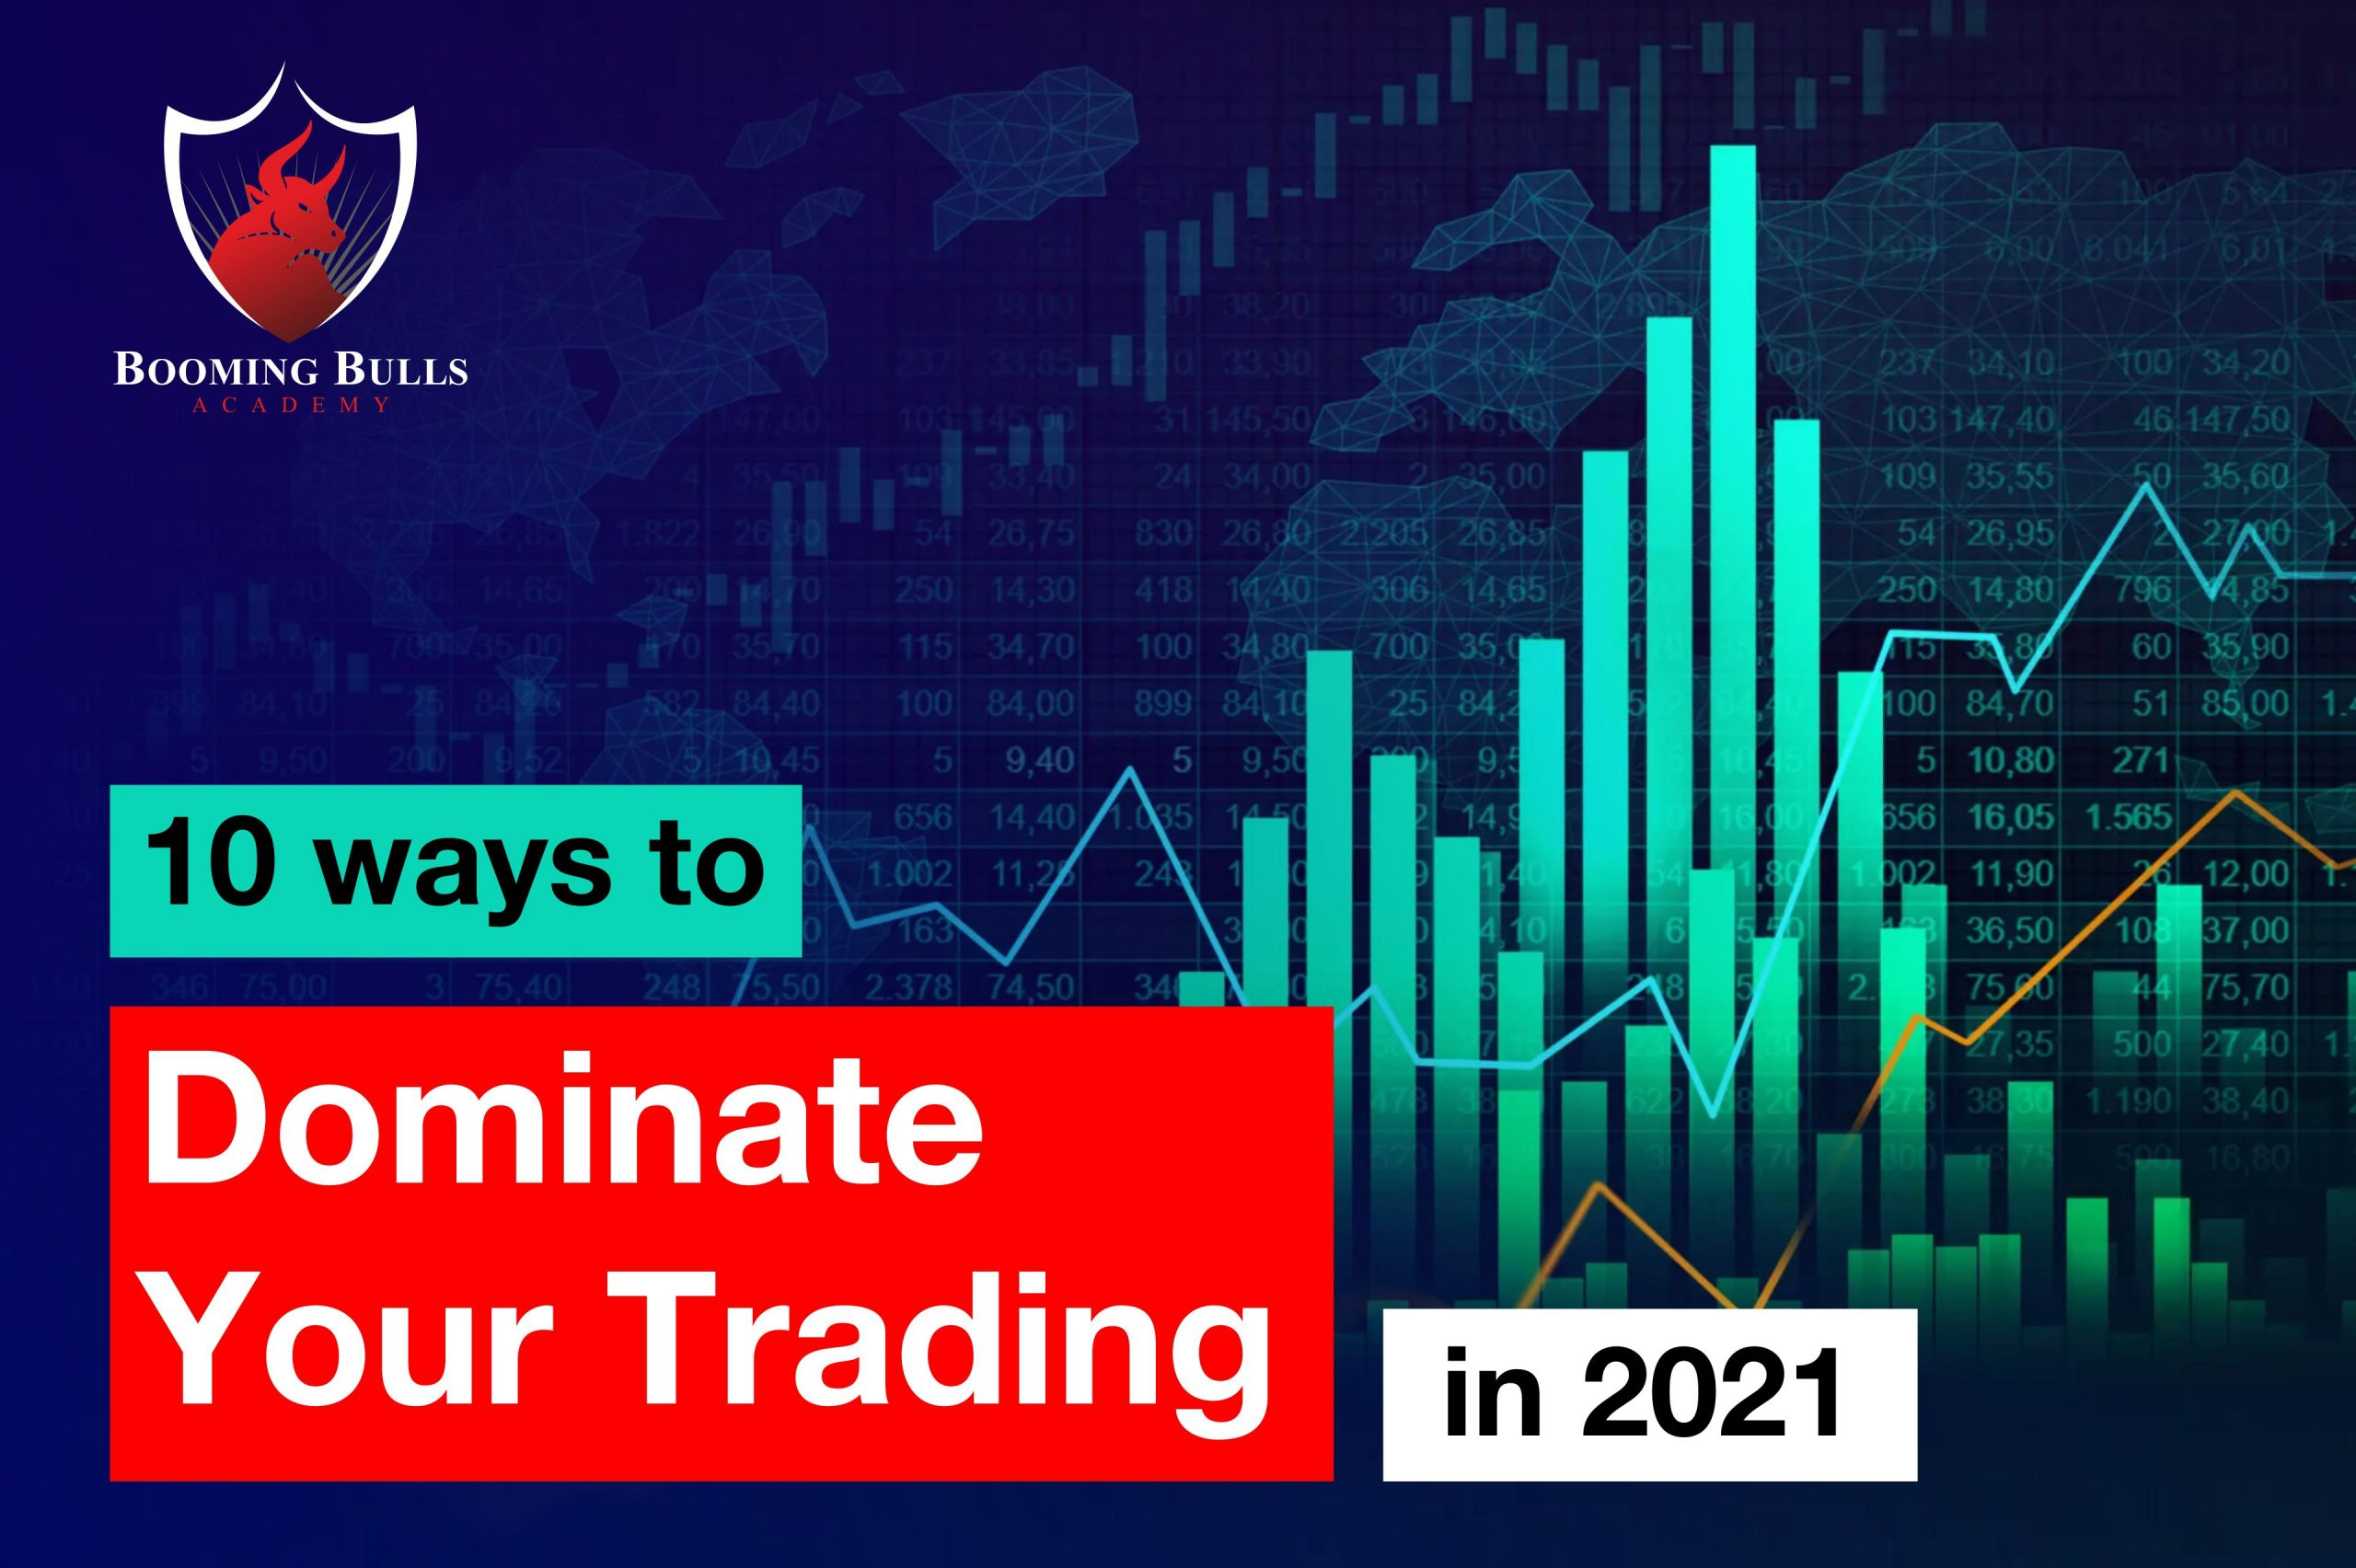 10 Ways To Dominate Your Trading in 2021